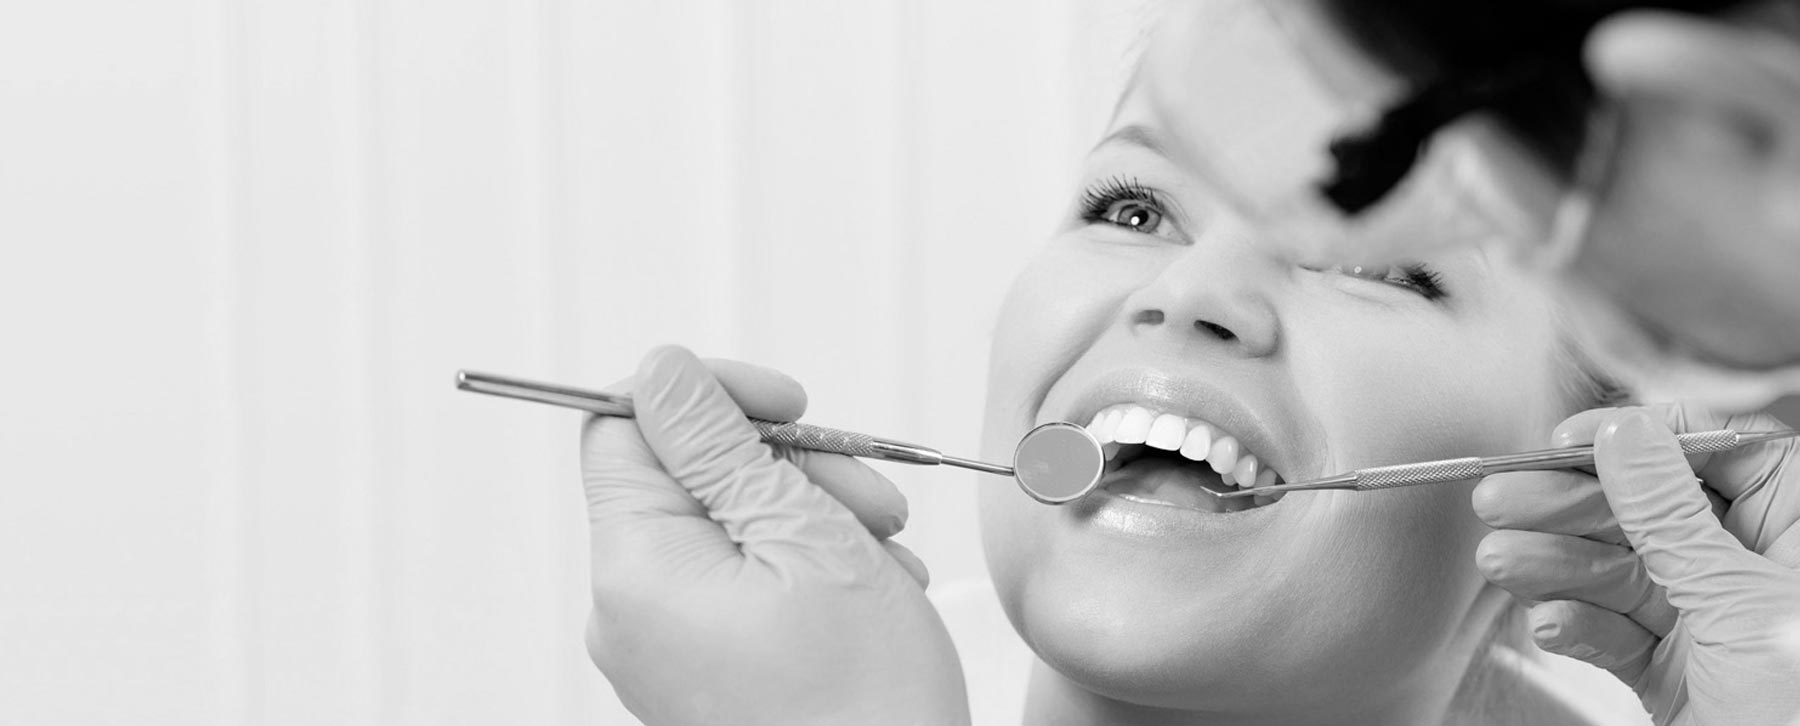 Dental Clinic in Delhi | Top Dentist in South Delhi, India